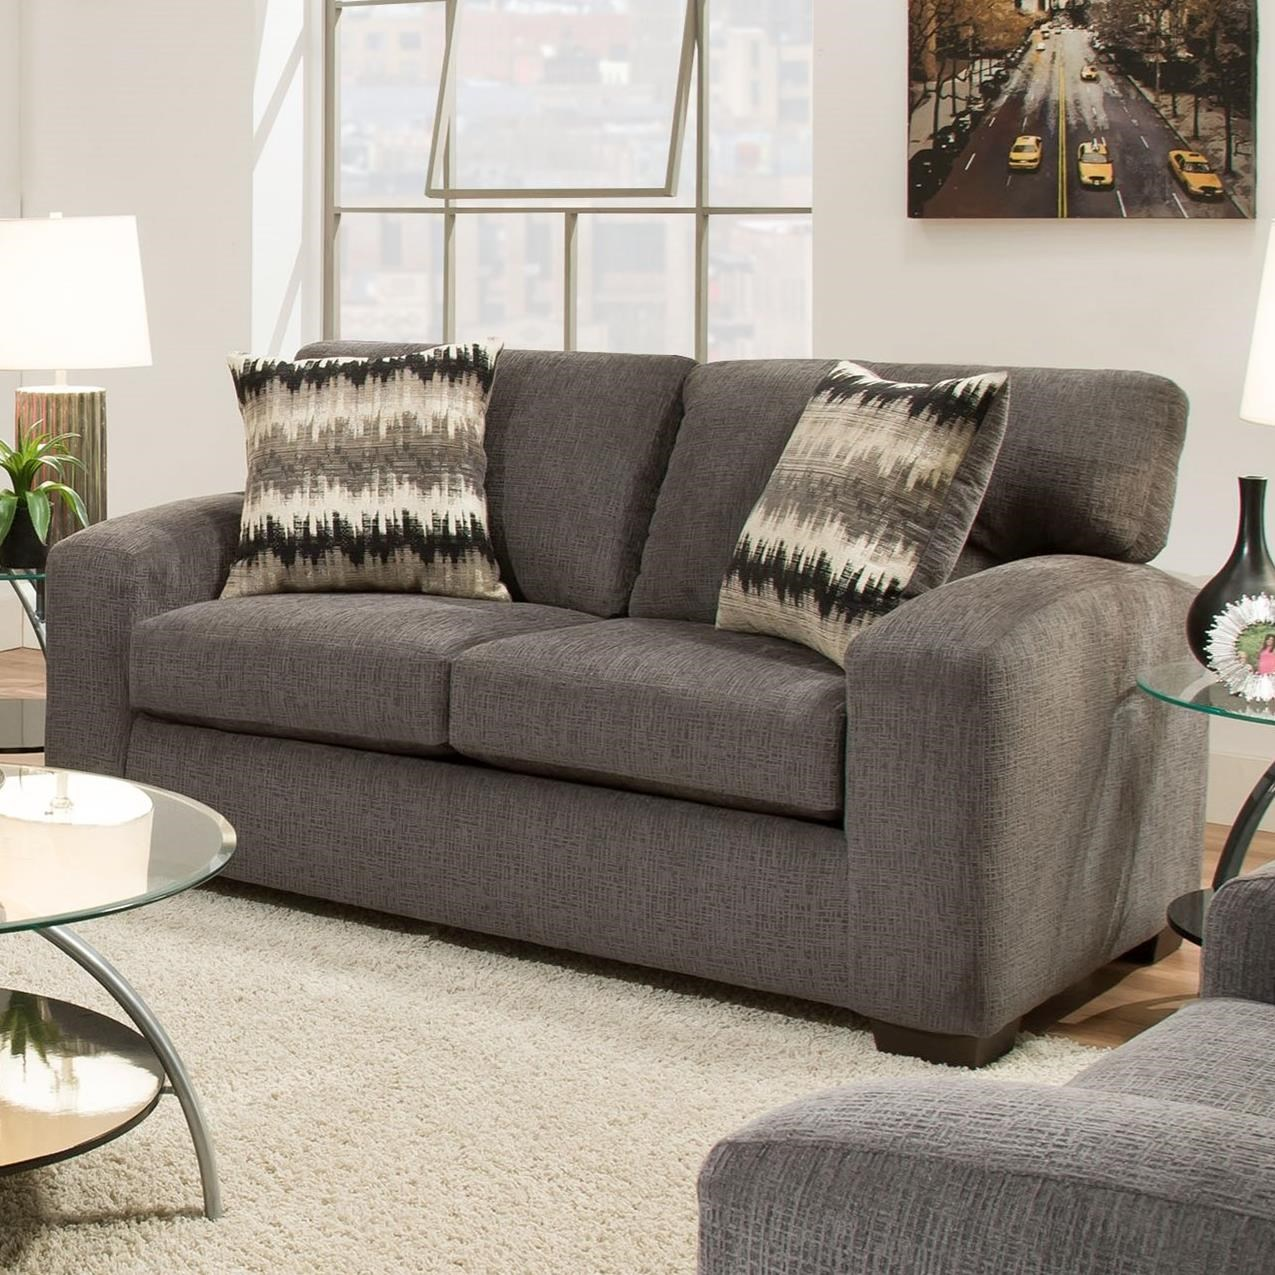 5250 Loveseat by Peak Living at Prime Brothers Furniture